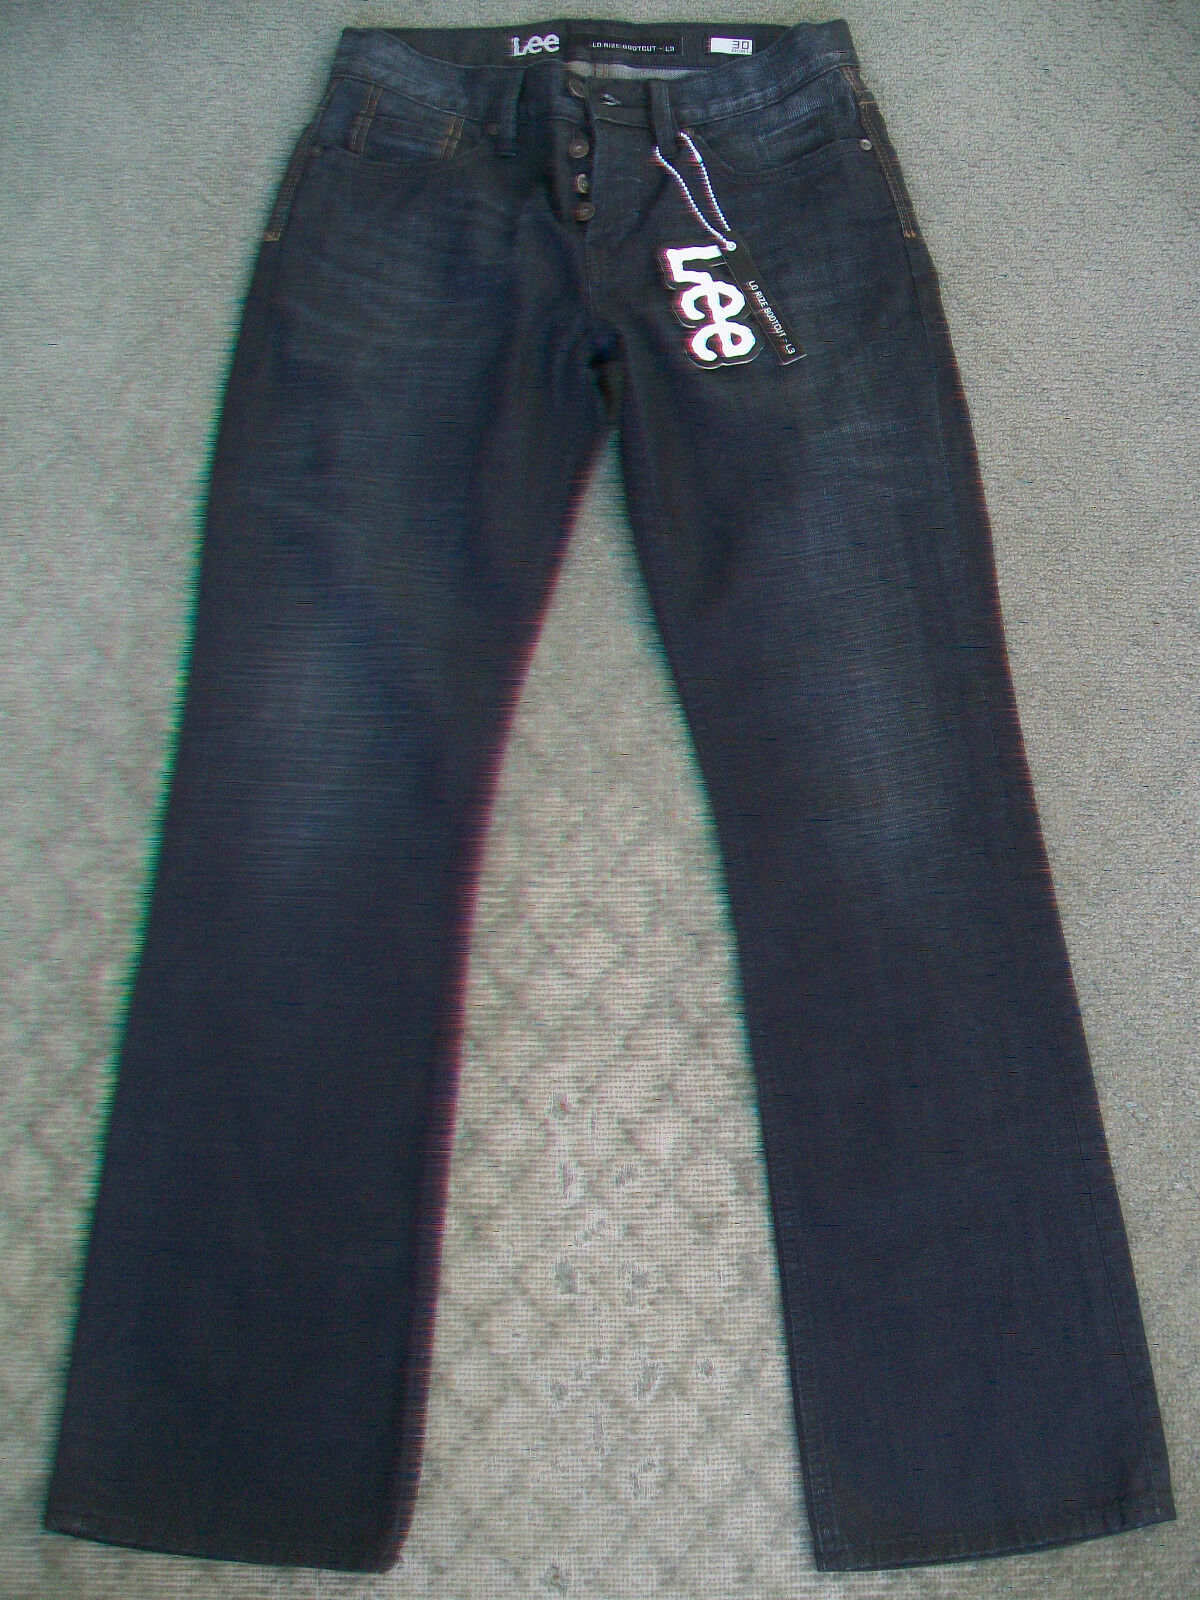 MENS LEE 'LO RIZE BOOTCUT L3' JEANS - BNWT - SIZE 30 S